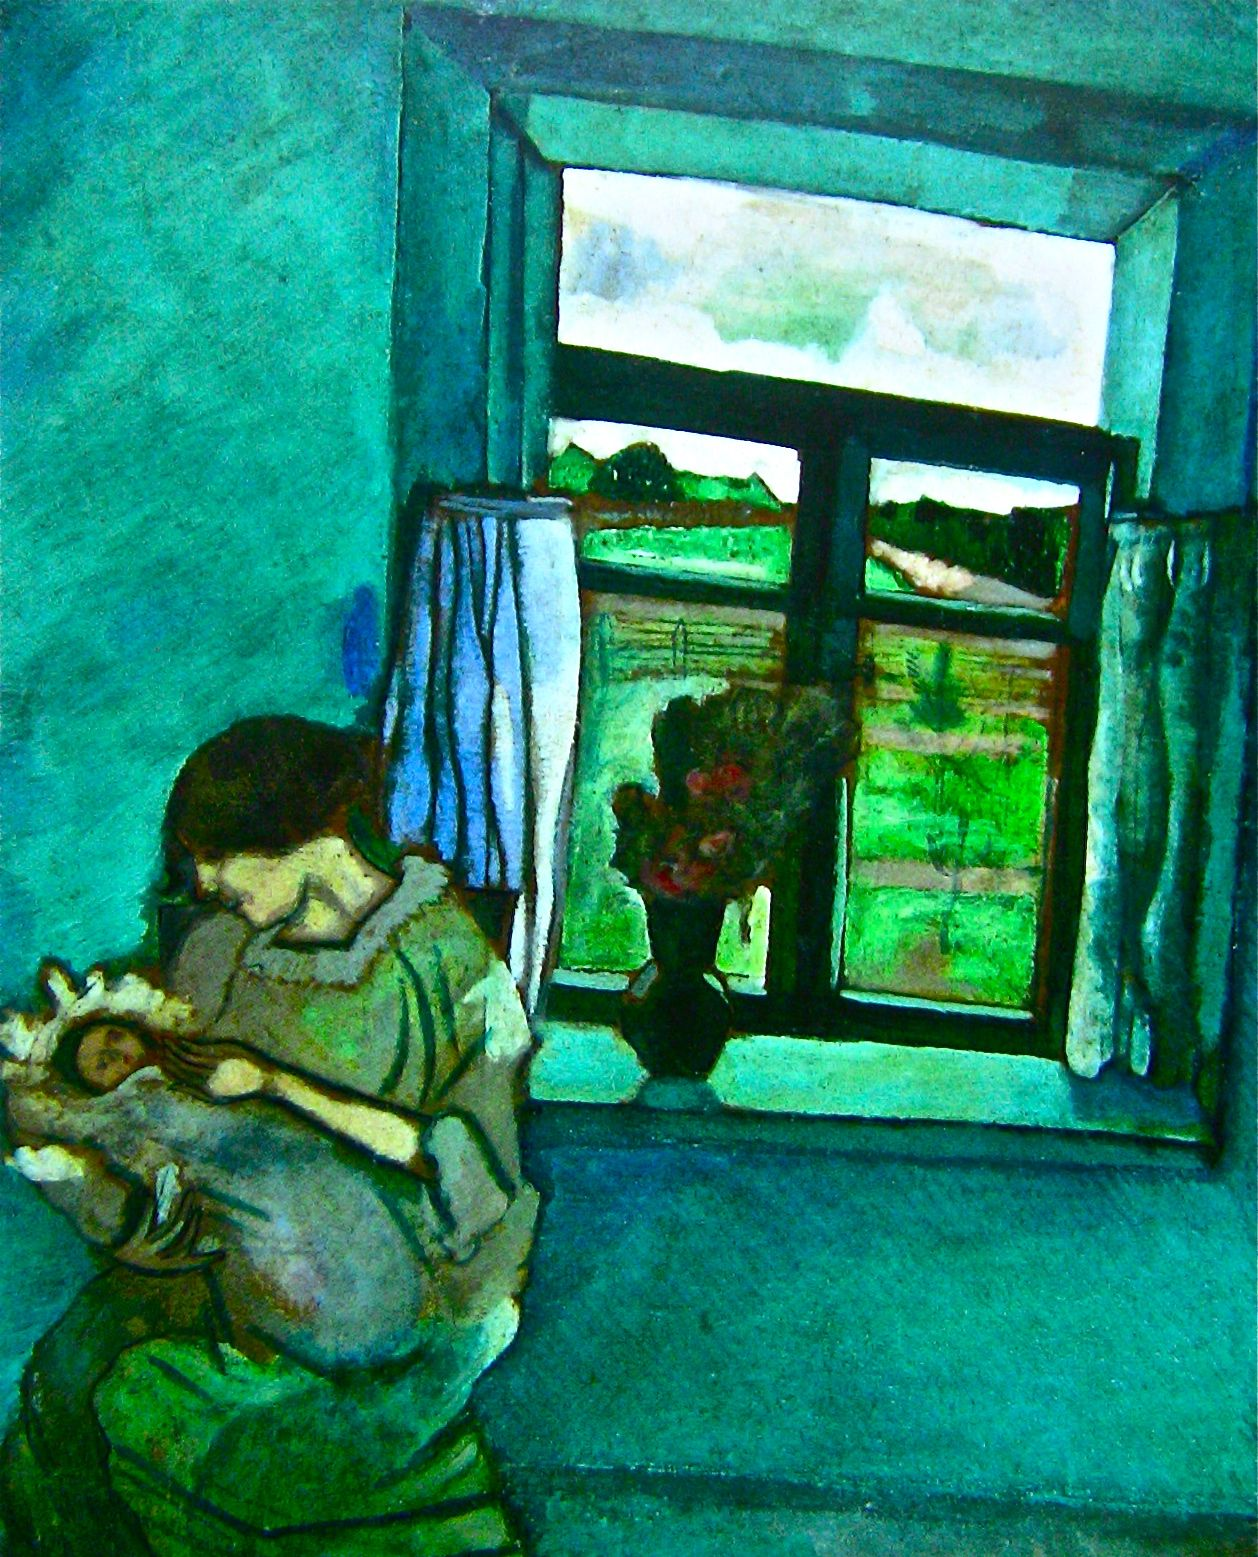 marc chagall bella and ida | All is far from lost ... Chagall and Bella had their baby, Ida, in ...